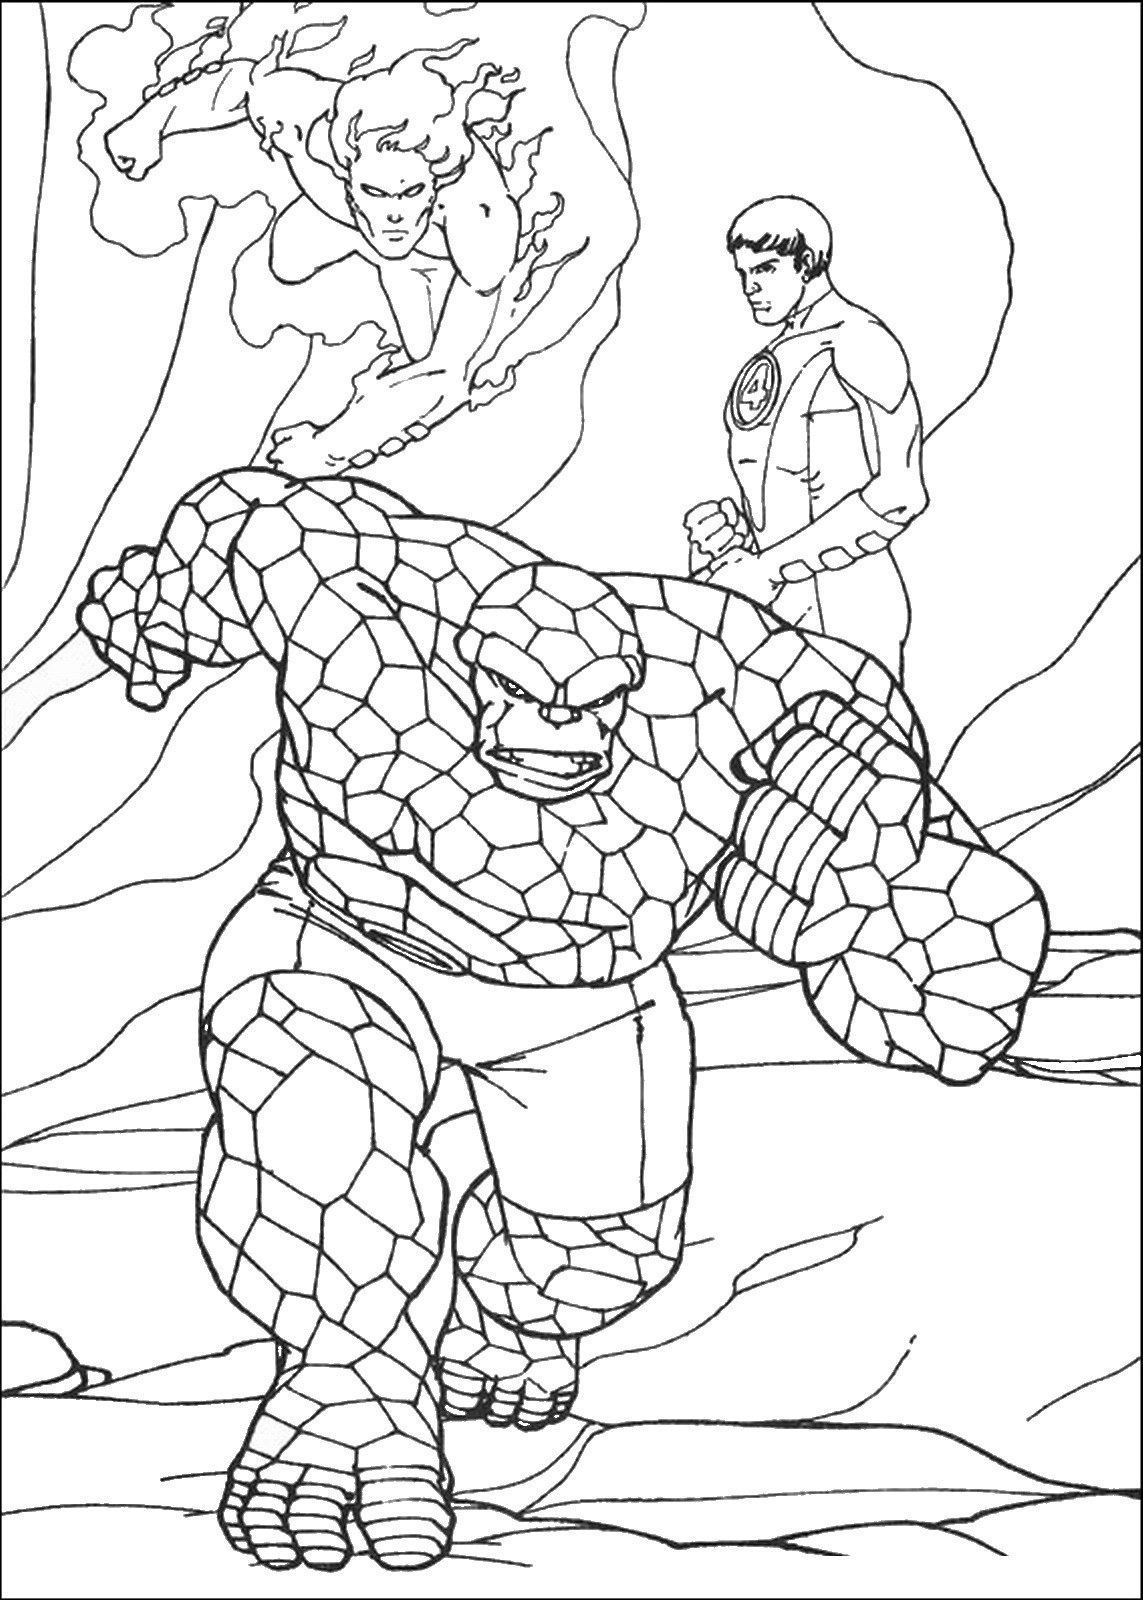 fantasy coloring pages pin on fantasy women coloring pages fantasy pages coloring